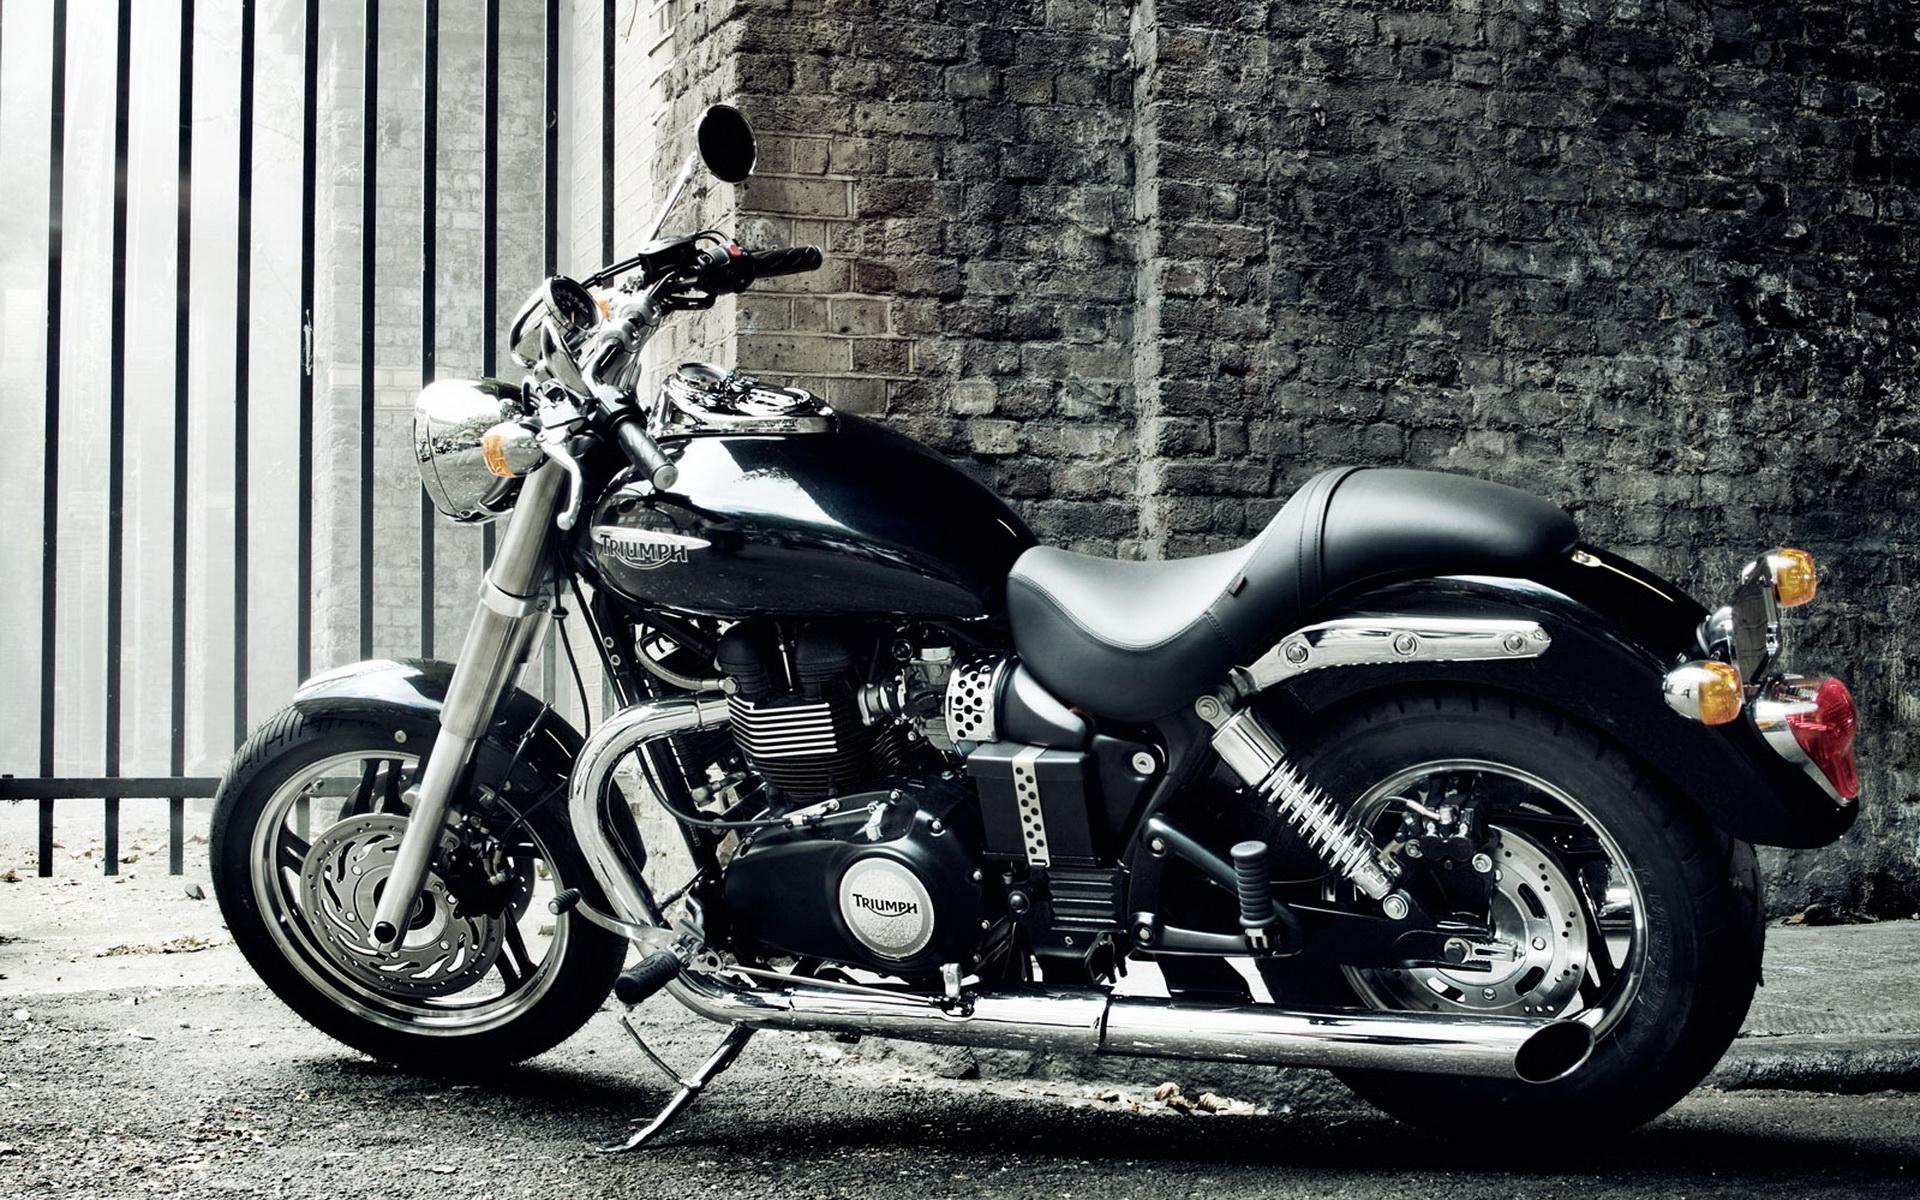 Hd Fiers Bikes Hd Wallpapers: 50 Free Harley Davidson Wallpapers Hd For PC